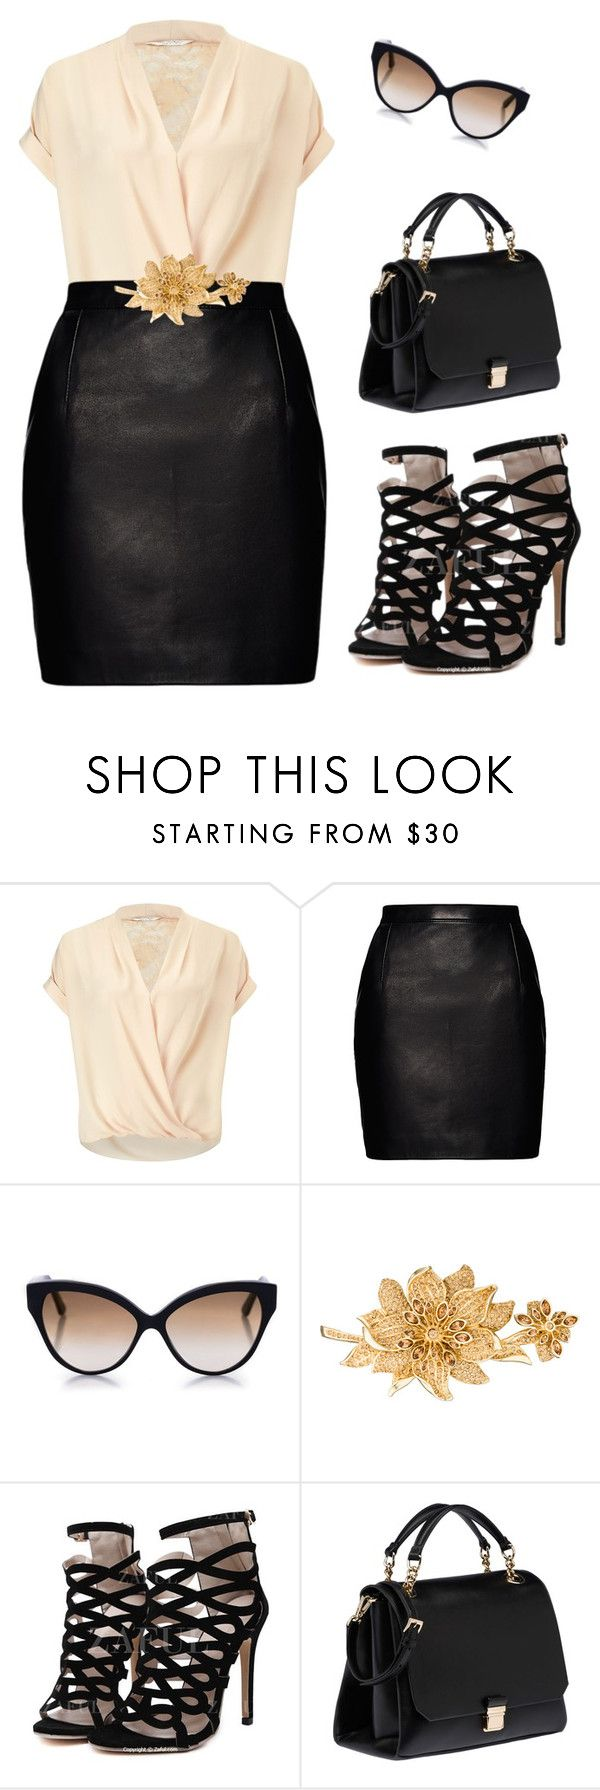 """""""Full figured outfit"""" by makeuphobbyist ❤ liked on Polyvore featuring Miss Selfridge, Magda Butrym, Cutler and Gross, Judith Leiber and Miu Miu"""